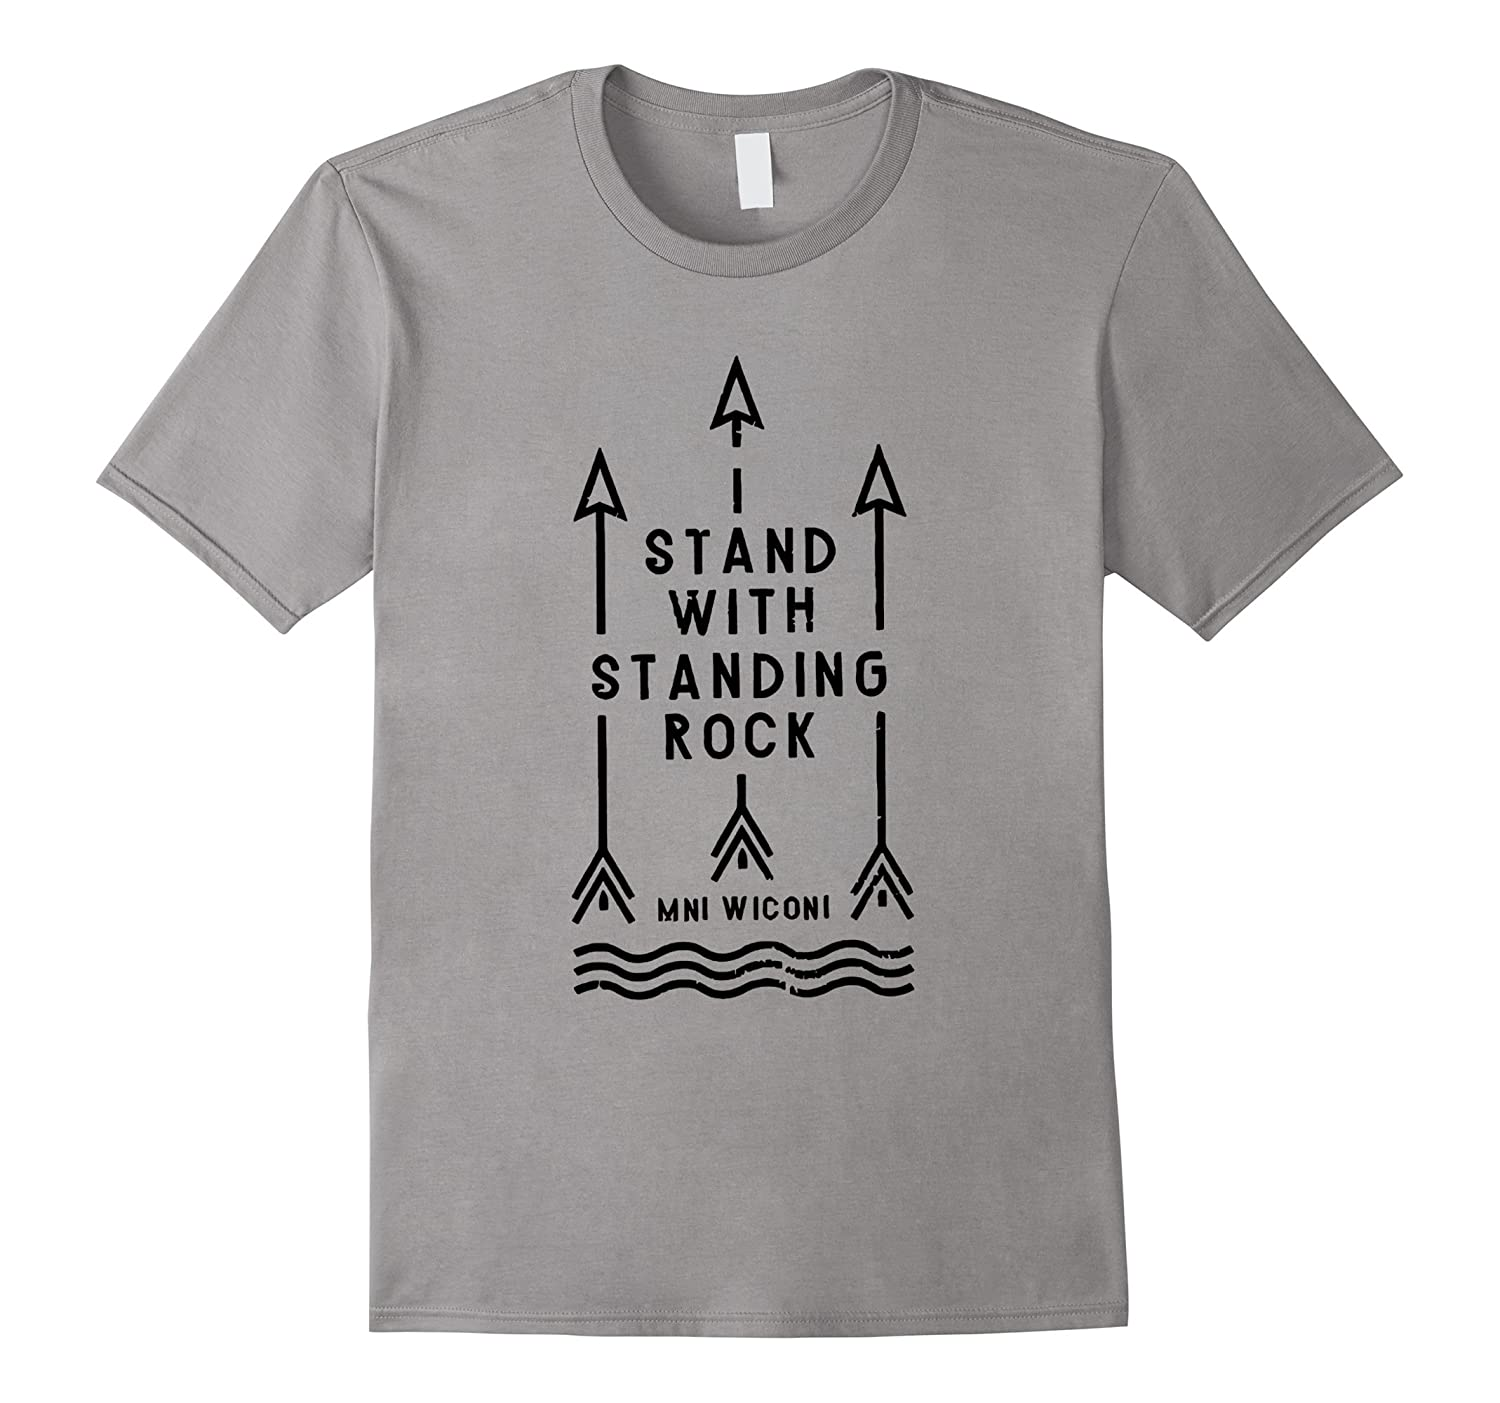 Original I Stand With Standing Rock T Shirt MNI WICONI-BN